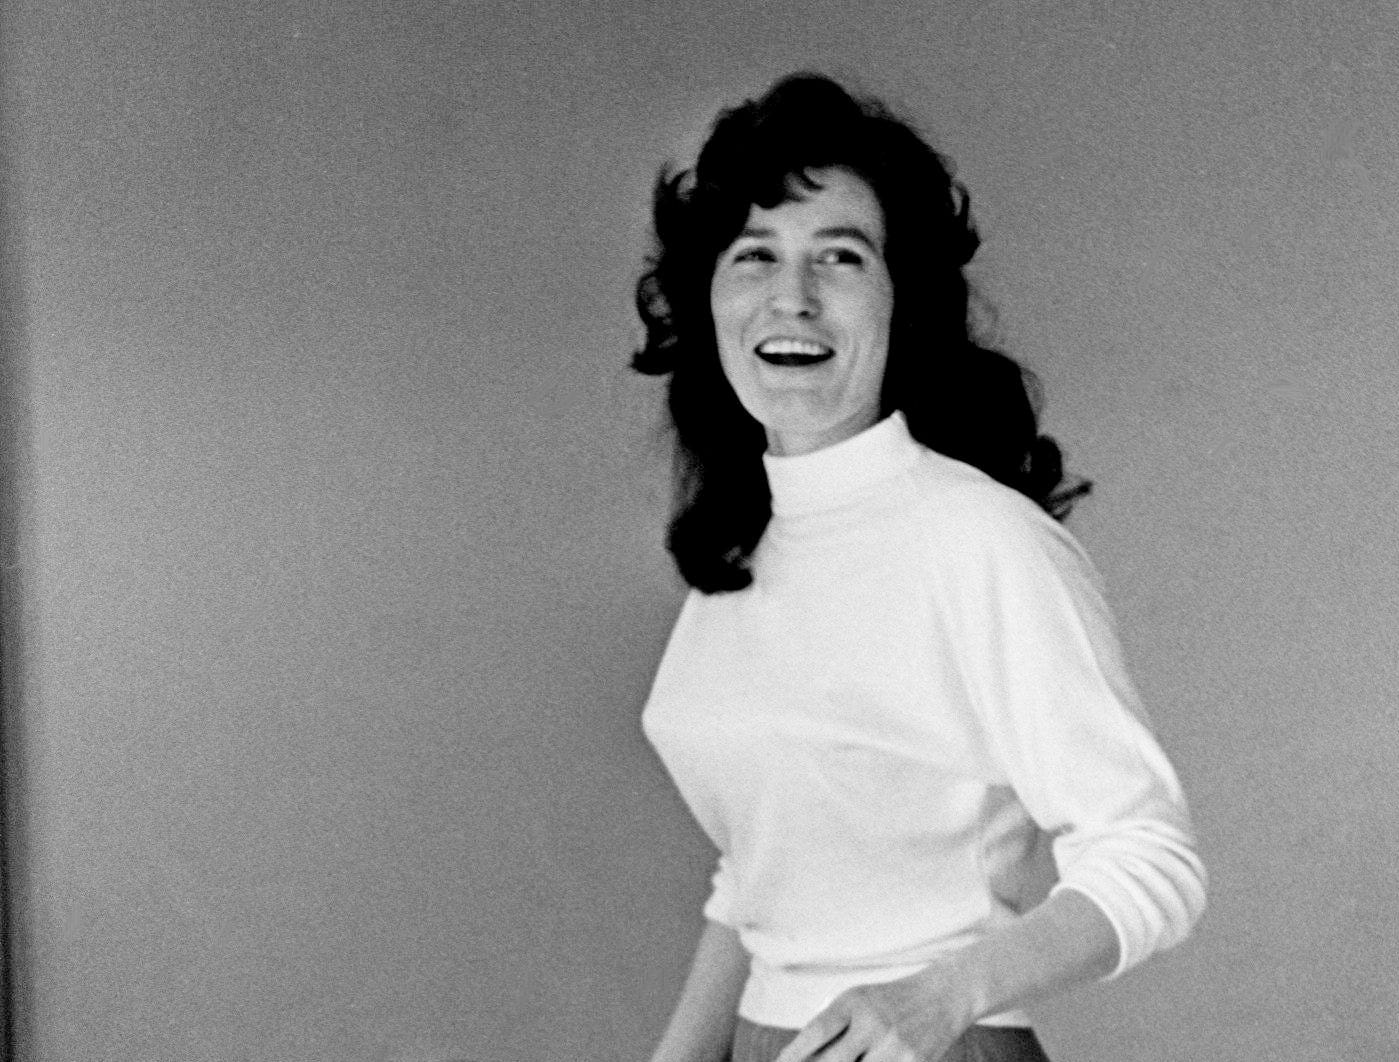 Loretta Lynn shows how she had to practice walking in high heel shoes Jan. 31, 1962, before she could run onto the Grand Ole Opry stage without stumbling. The singer prefers boots, but the Wilburn Brothers insisted she wear high heels.